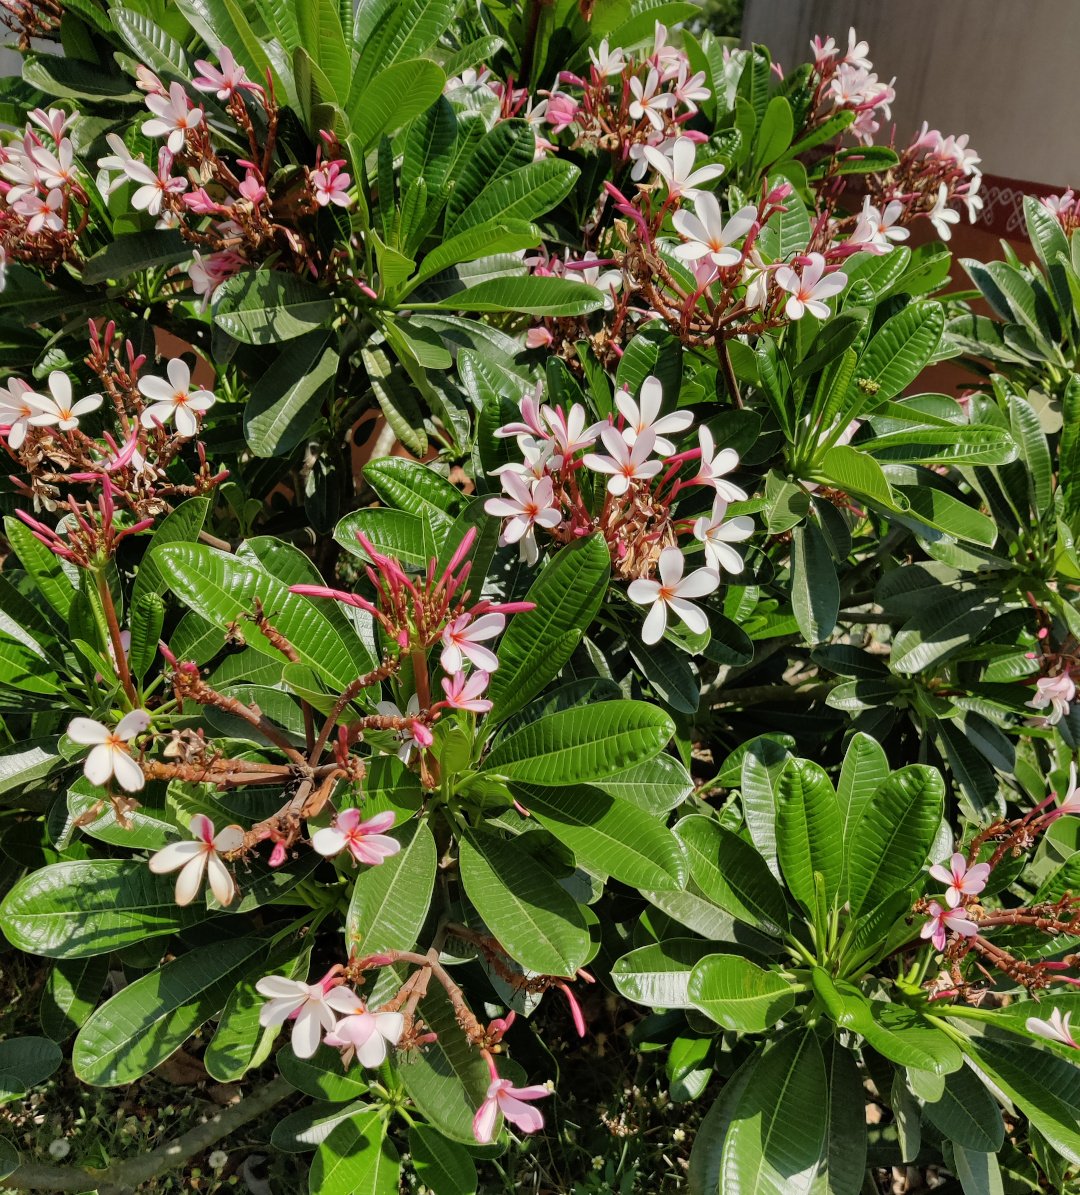 plant with small light pink flowers and shiny foliage